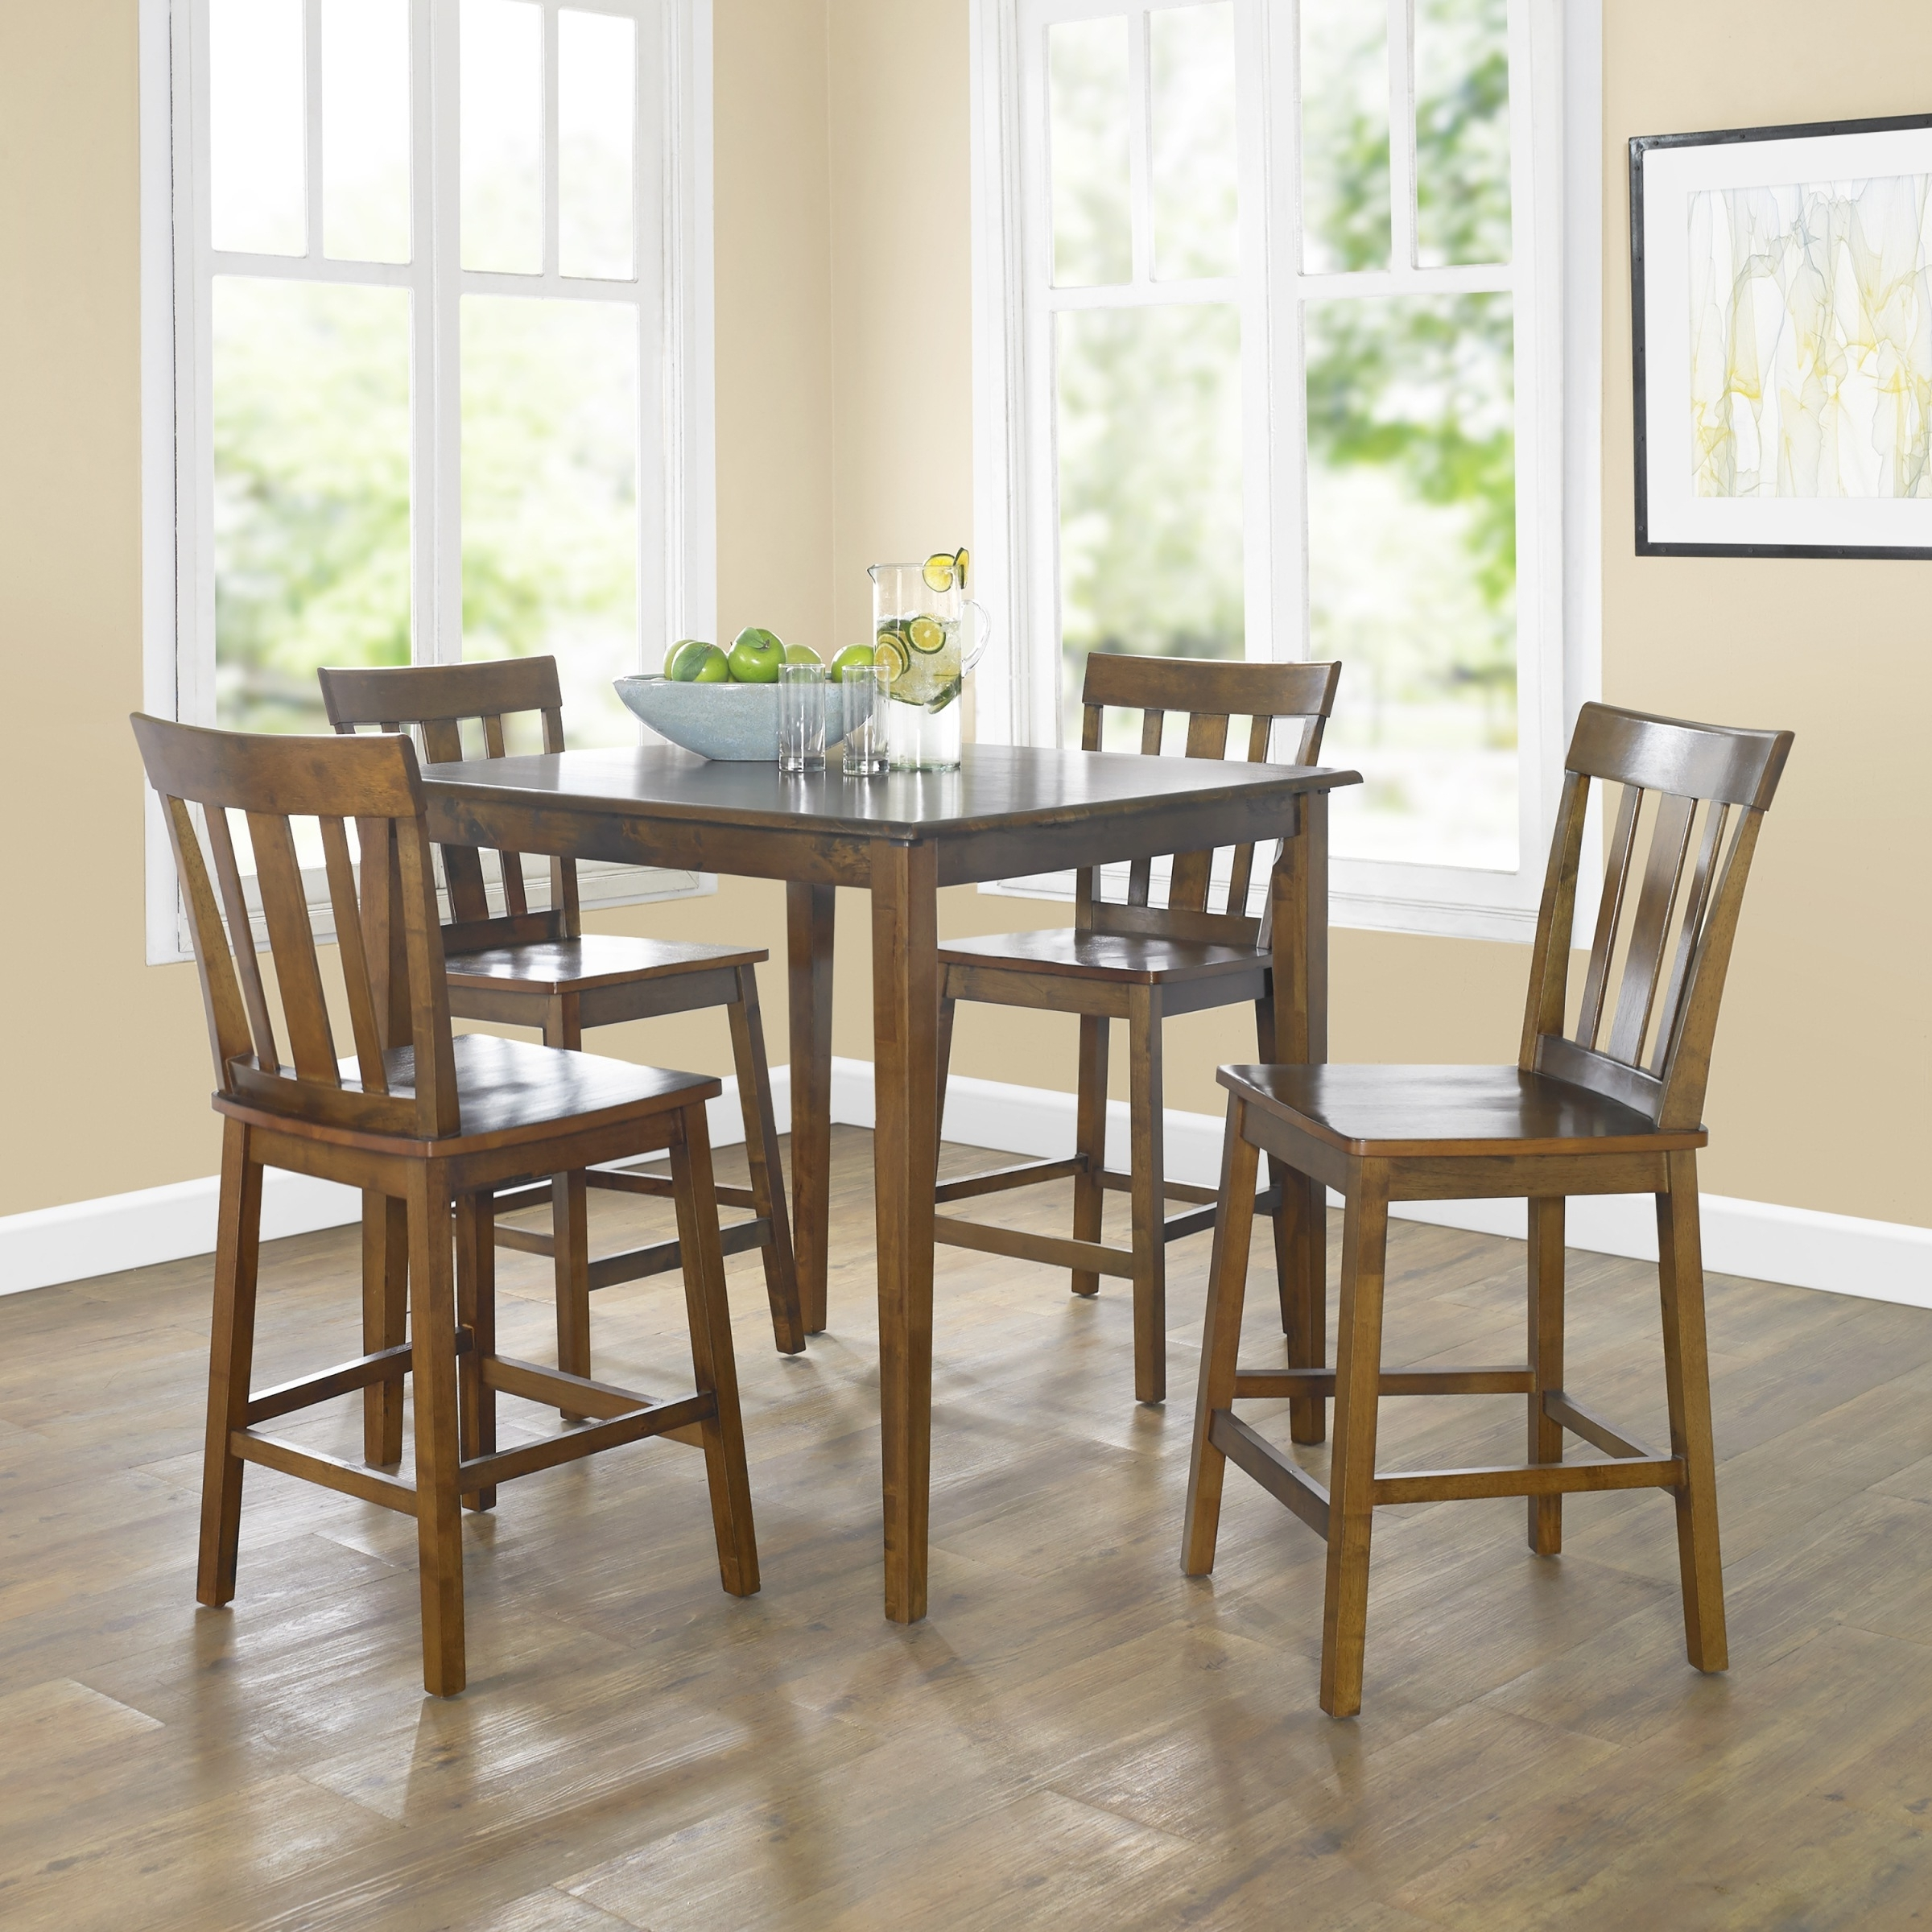 Mainstays 5 Piece Mission Counter Height Dining Set – Walmart Inside Best And Newest Laurent 7 Piece Rectangle Dining Sets With Wood Chairs (View 16 of 25)